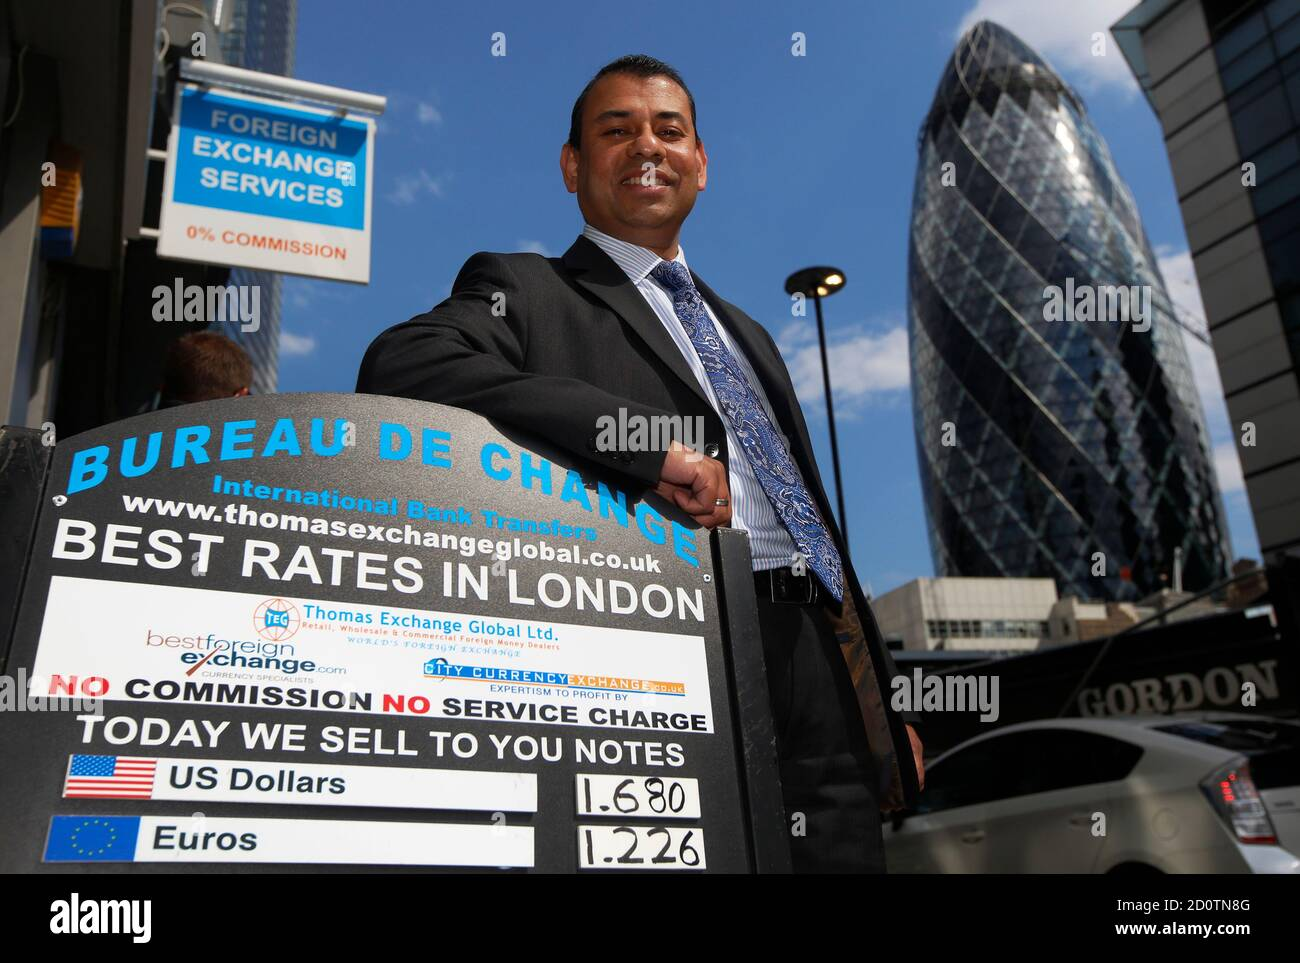 Director Sakthi Ariaratnam poses outside a branch of Thomas Exchange Global foreign exchange in the City of London July 1, 2014. From a small, white-washed basement close to London?s Liverpool Street station, Ariaratnam is beating banks at what you would have thought was their own game - and it is relatively easy. On a recent Tuesday morning in the heart of London's City financial district, Sakthi's firm Best FX would sell you 124 euros for 100 British pounds. Less than 20 metres along the street, the world's third biggest trader of foreign currencies, Barclays, would only give you 118. Photog Stock Photo